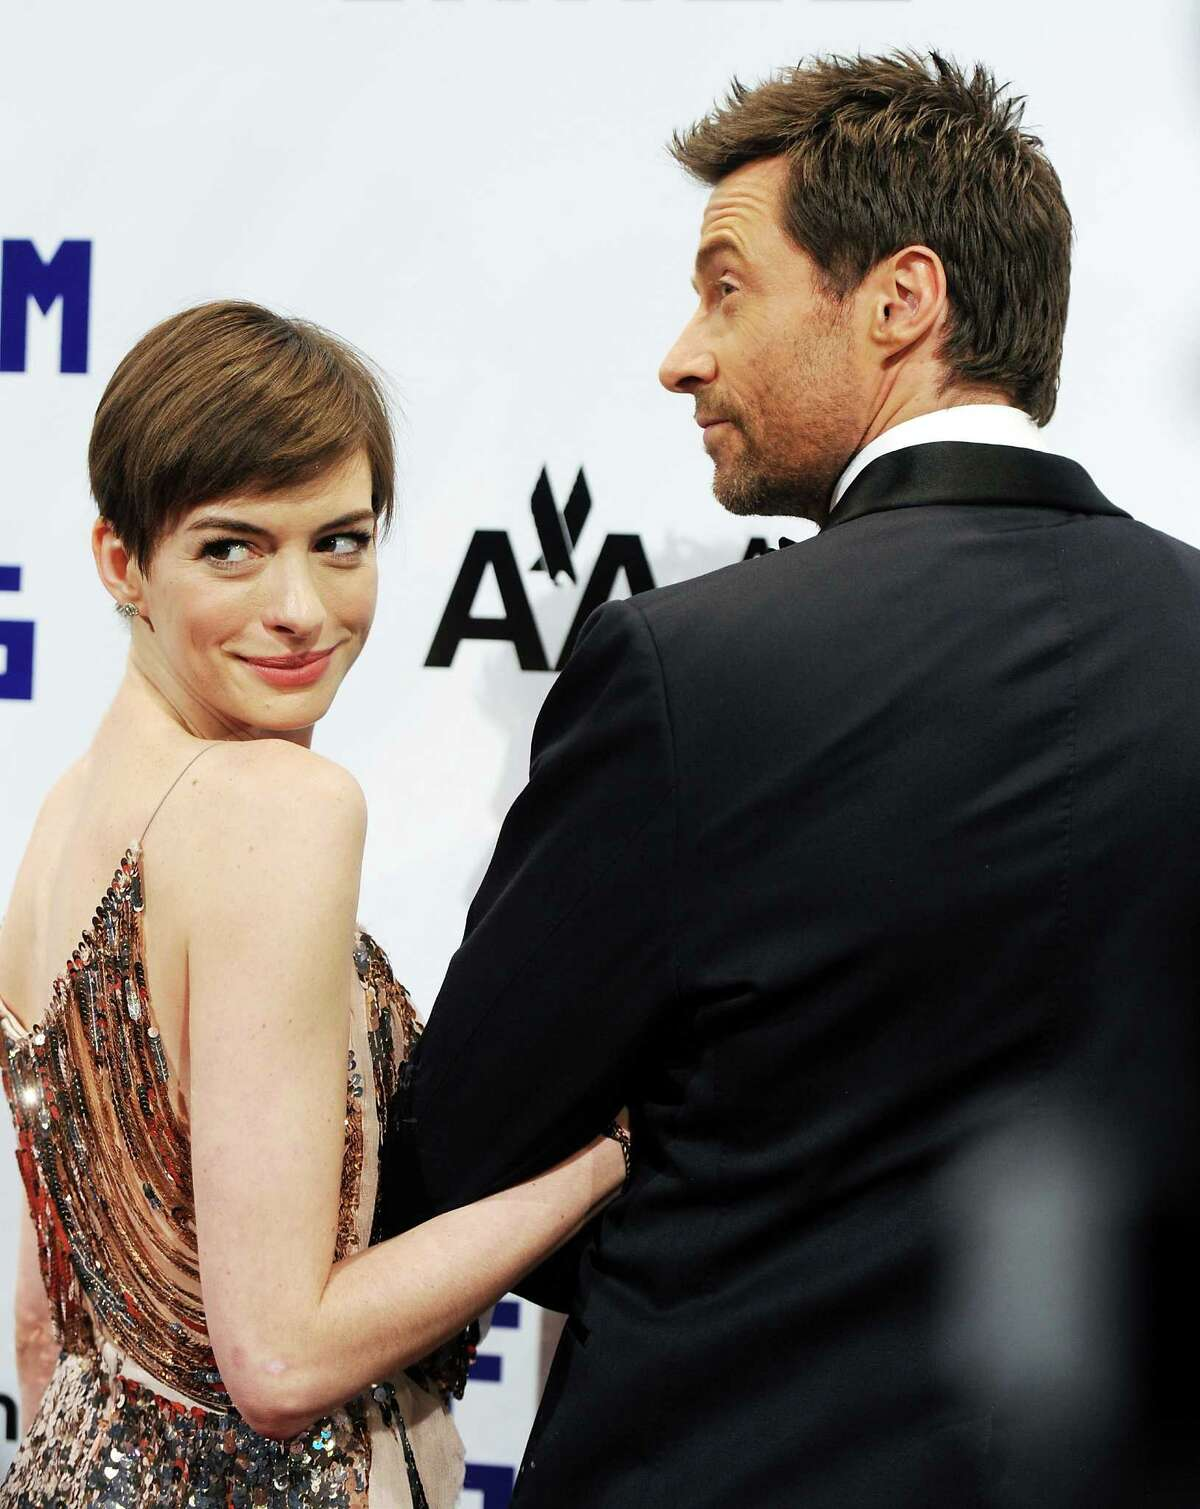 Actress Anne Hathaway, left, and honoree Hugh Jackman attend the Museum of the Moving Image Salute to Hugh Jackman at Cipriani Wall Street on Tuesday Dec. 11, 2012 in New York.